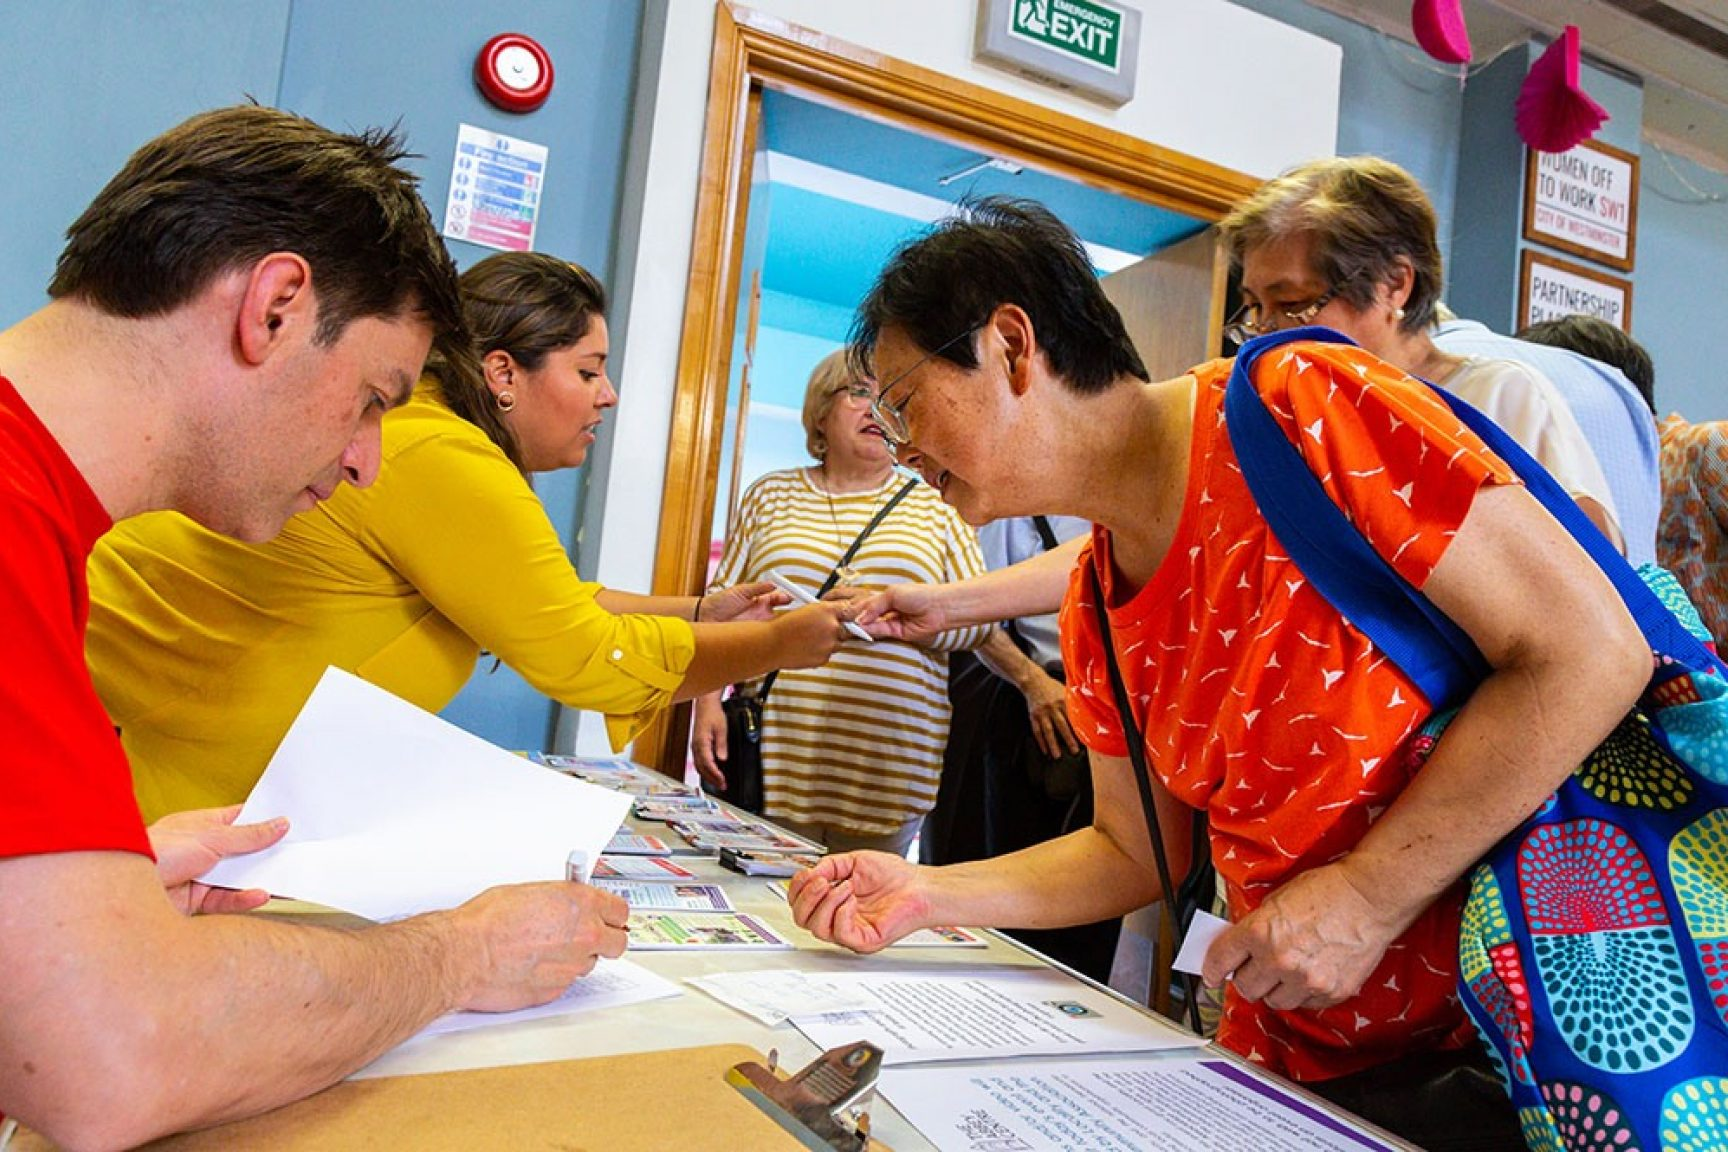 Registration at an event. Two people are signing in attendees, everyone is wearing brightly coloured clothing.